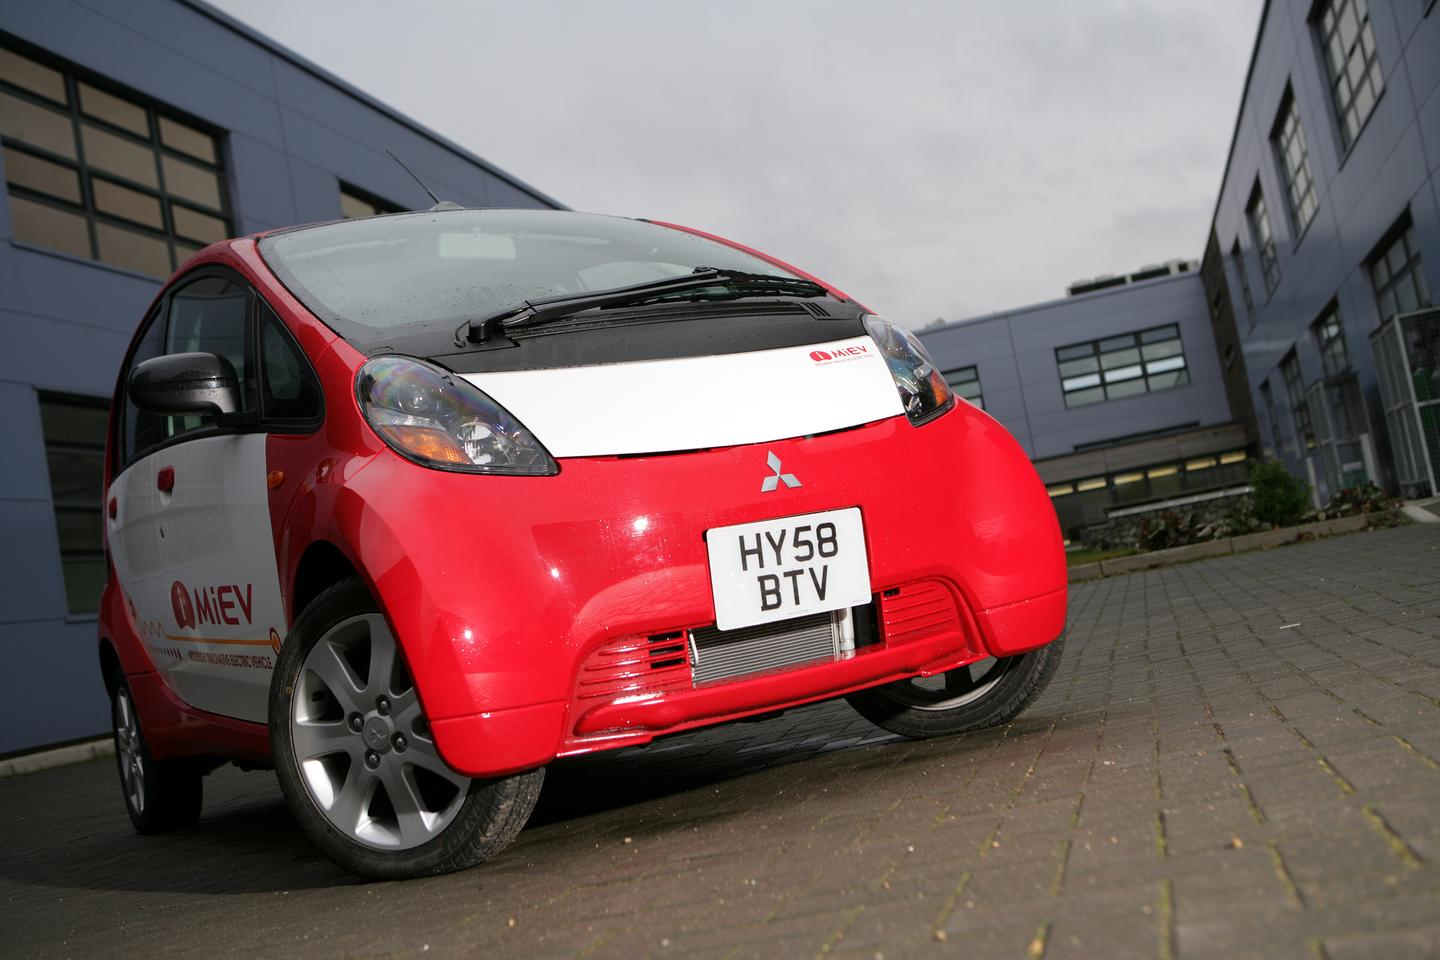 Mitsubishi's iMiev all electric vehicle earlier this year